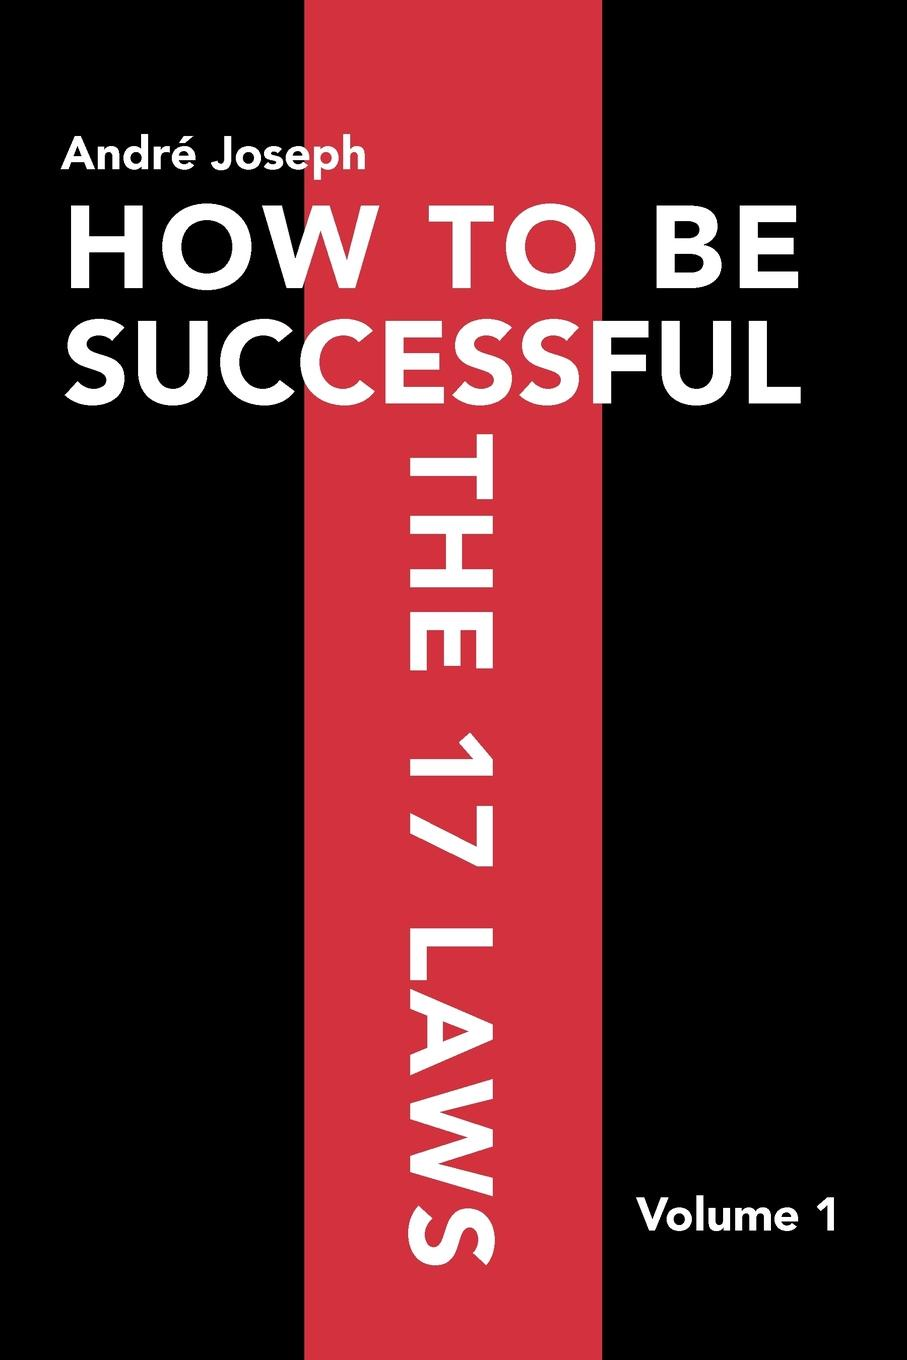 Andr Joseph, Andre Joseph How to Be Successful the 17 Laws. Volume 1 patrick e jeter the s factor how to be a successful person